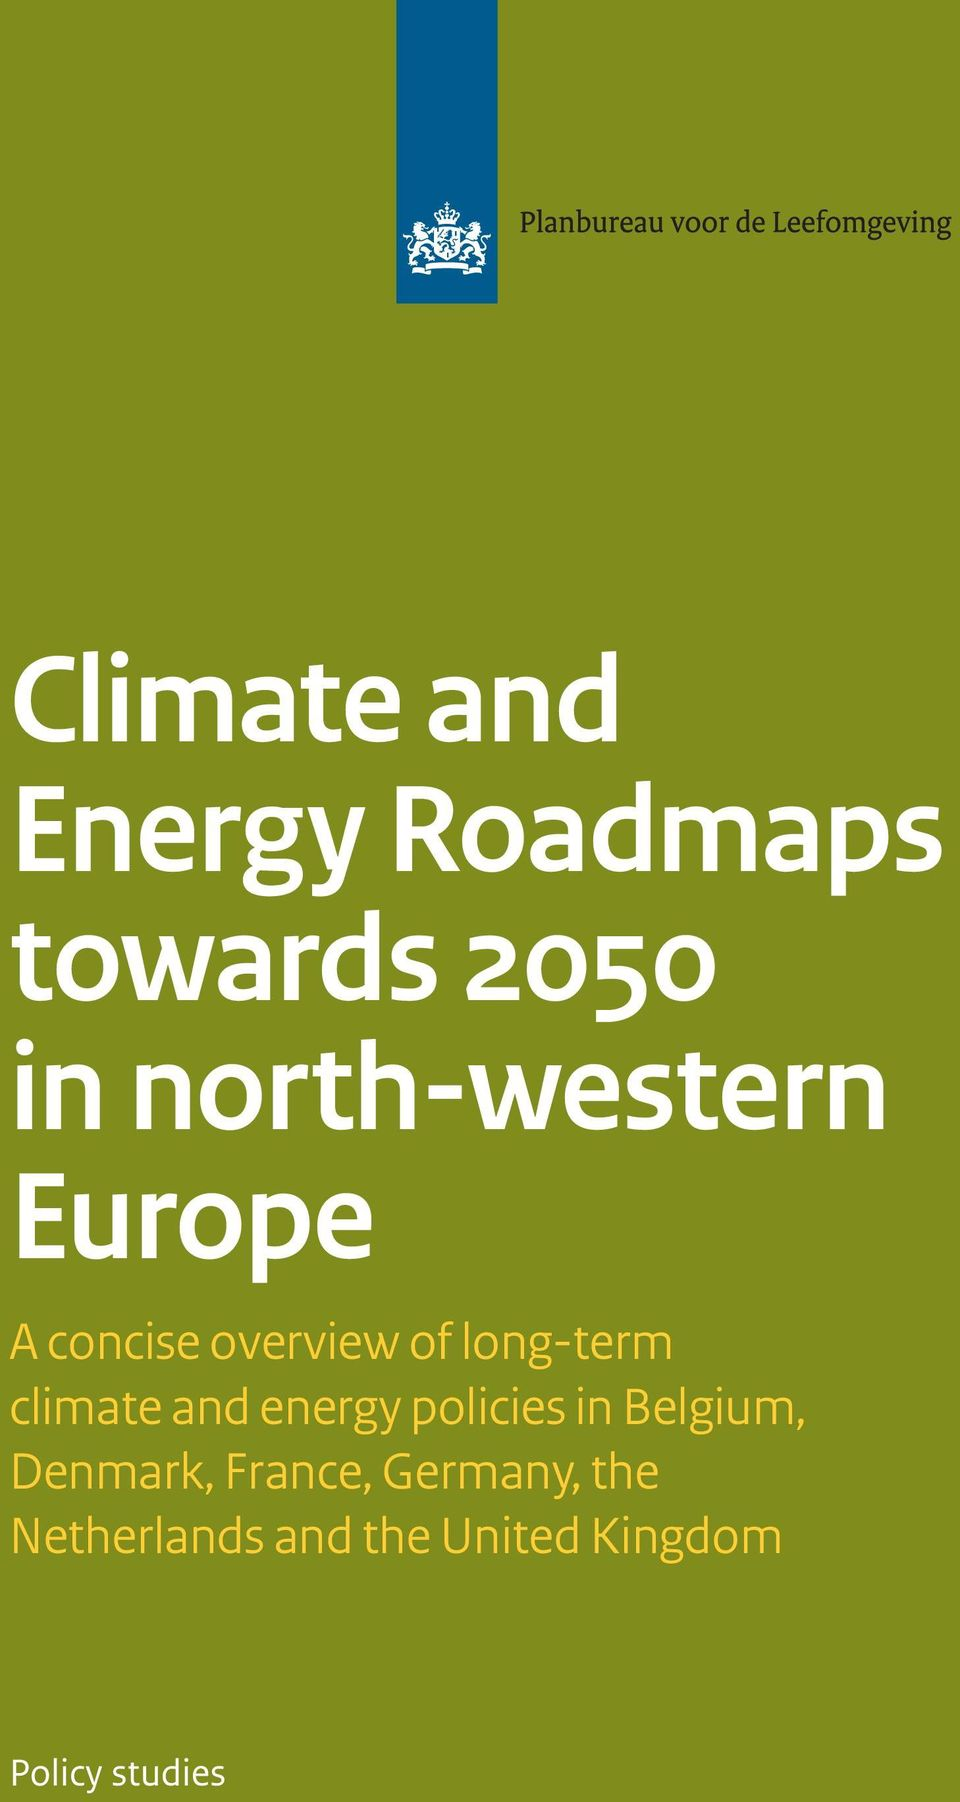 climate and energy policies in Belgium, Denmark,